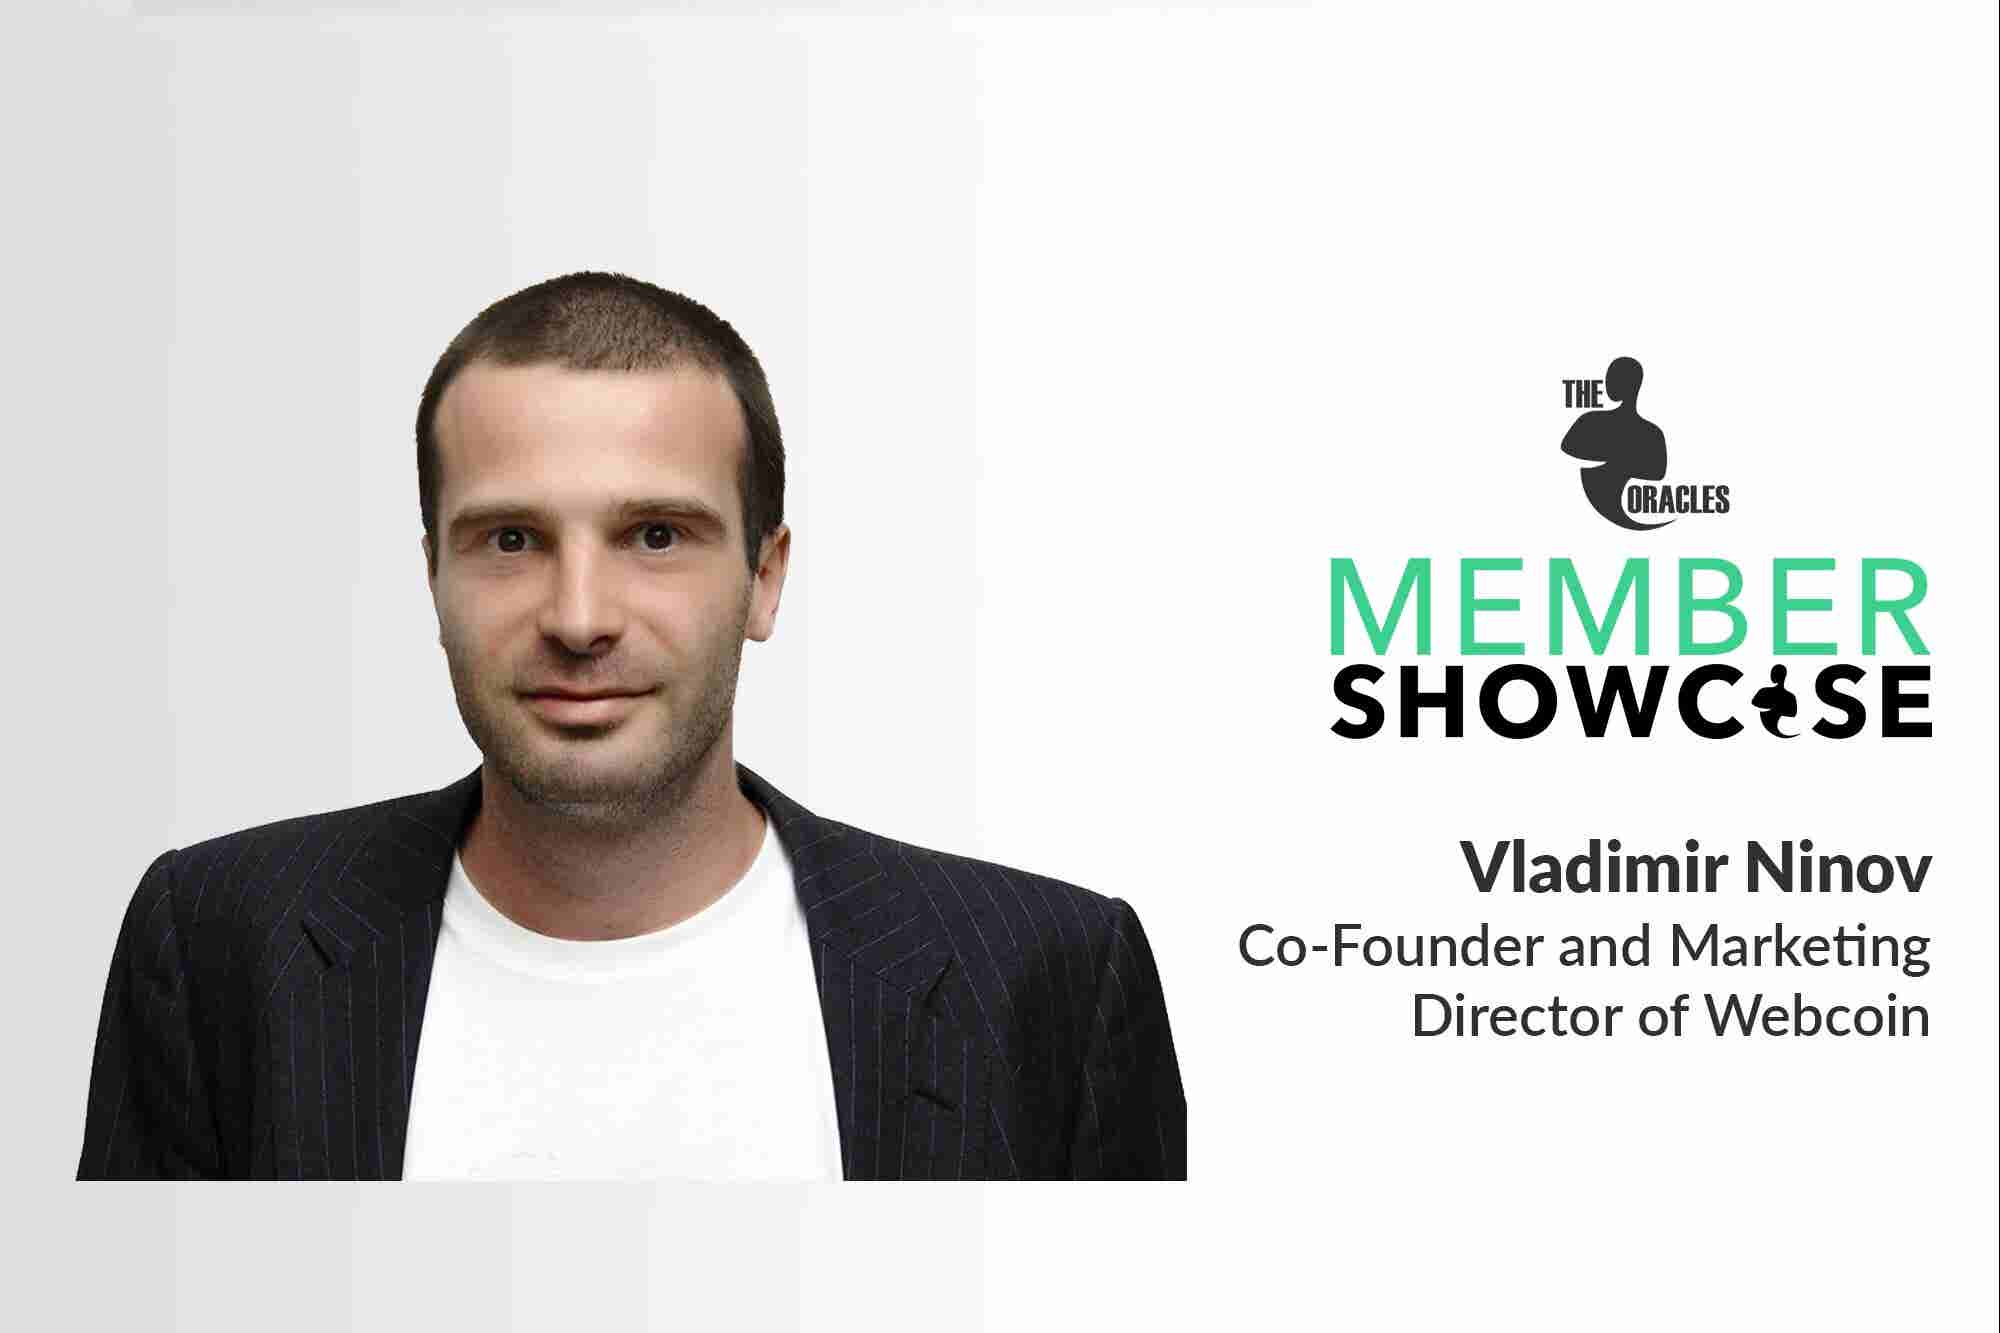 Vladimir Ninov on How Going the Extra Mile Has Made Him Successful